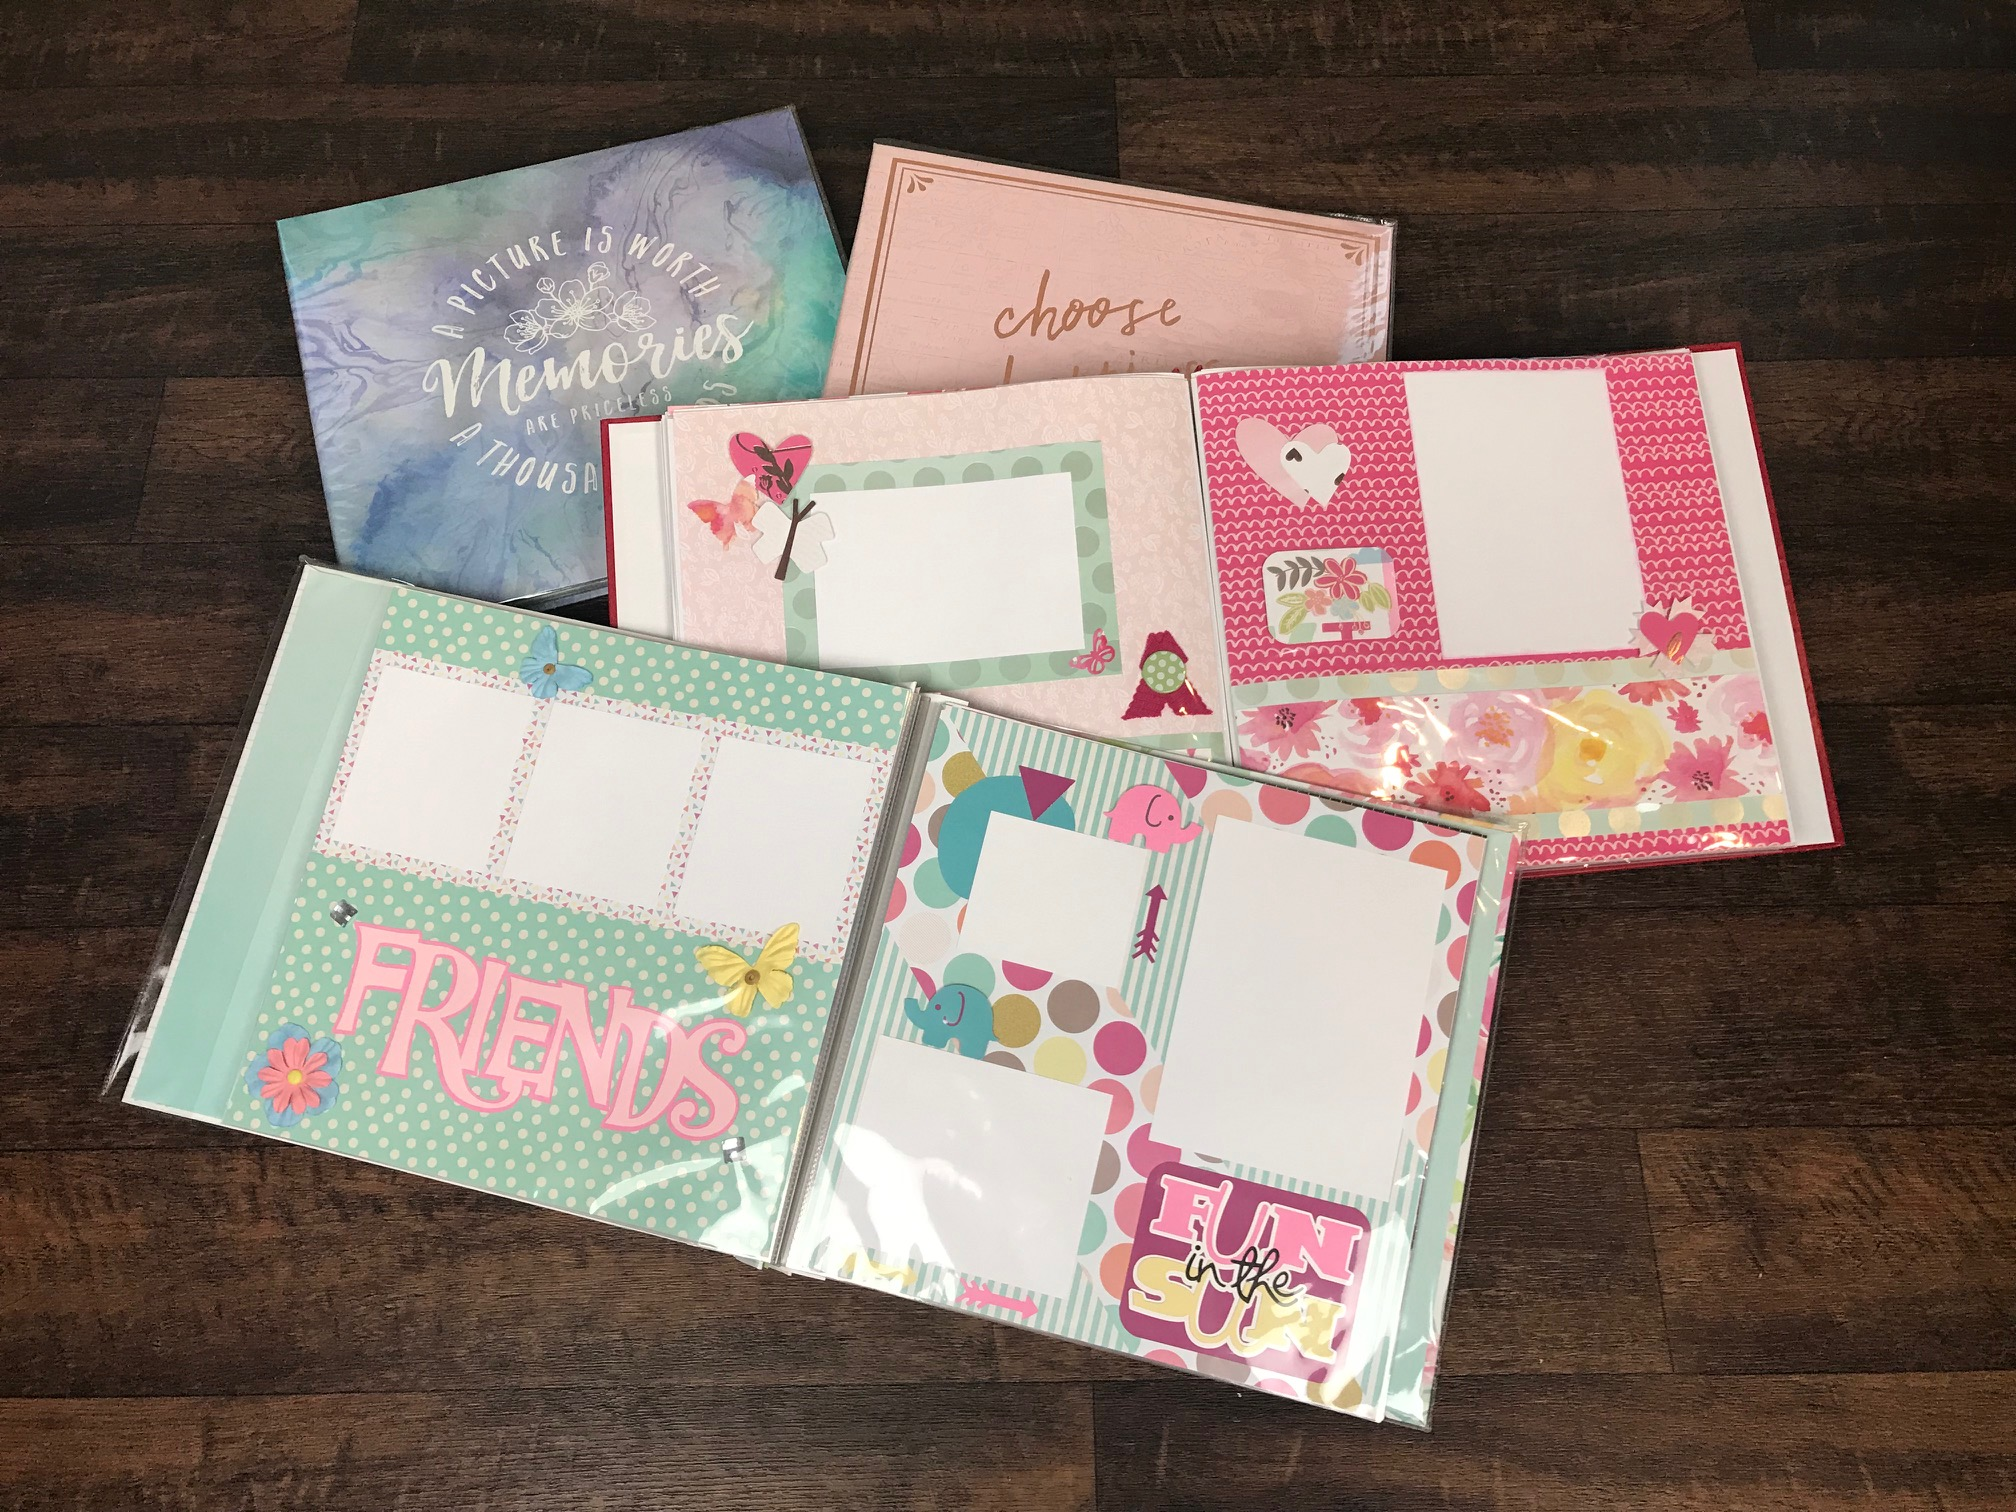 "12"" by 12"" - Large 12 inch Scrapbook ready for your pictures. Enjoy 20 large, fun, and bright pages in each book. All pages come with a high quality binder for a complete book!"